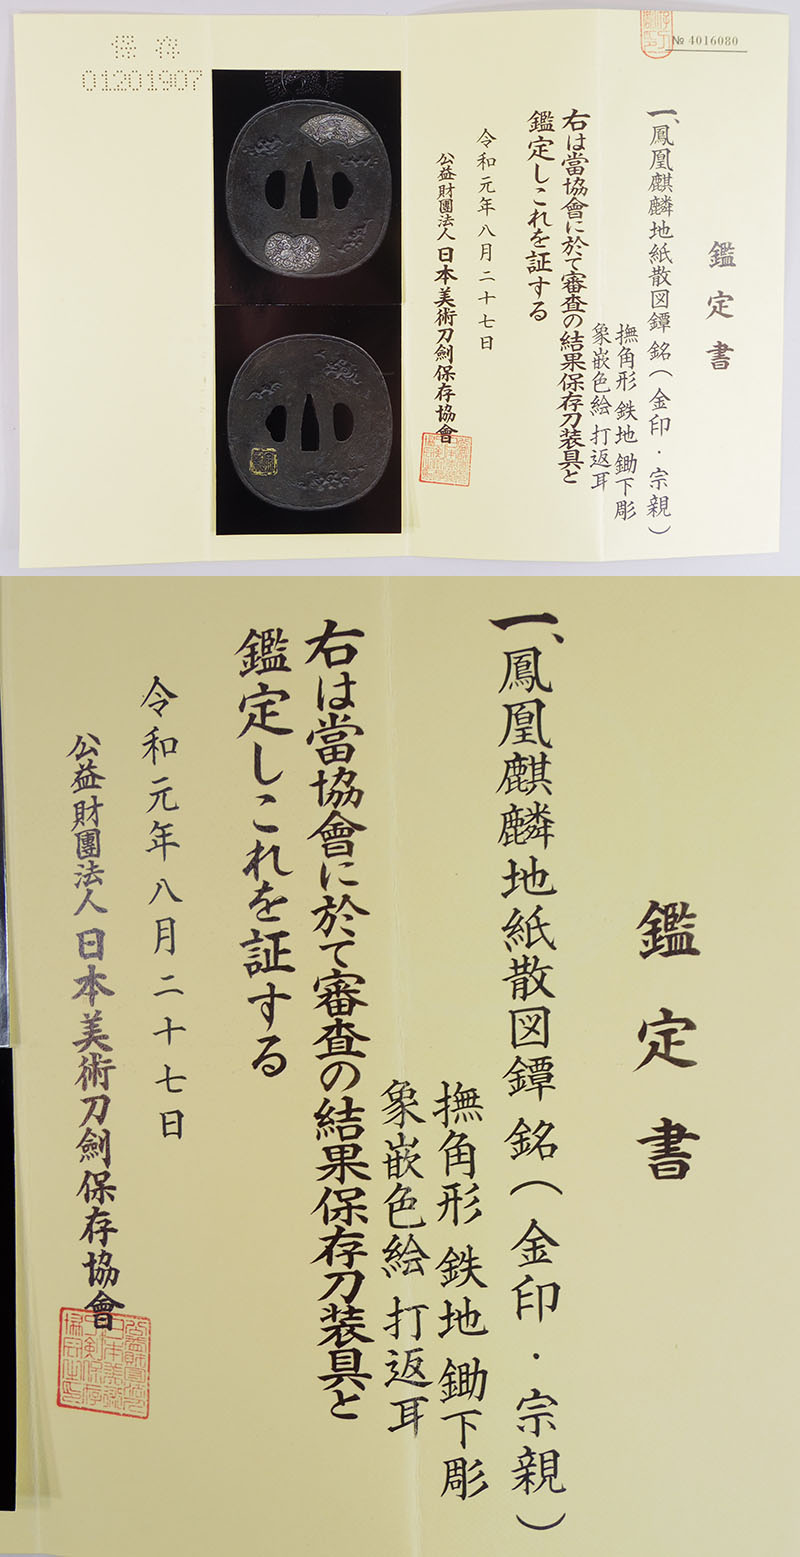 鳳凰麒麟地紙散図鍔(金印・宗親) Picture of Certificate